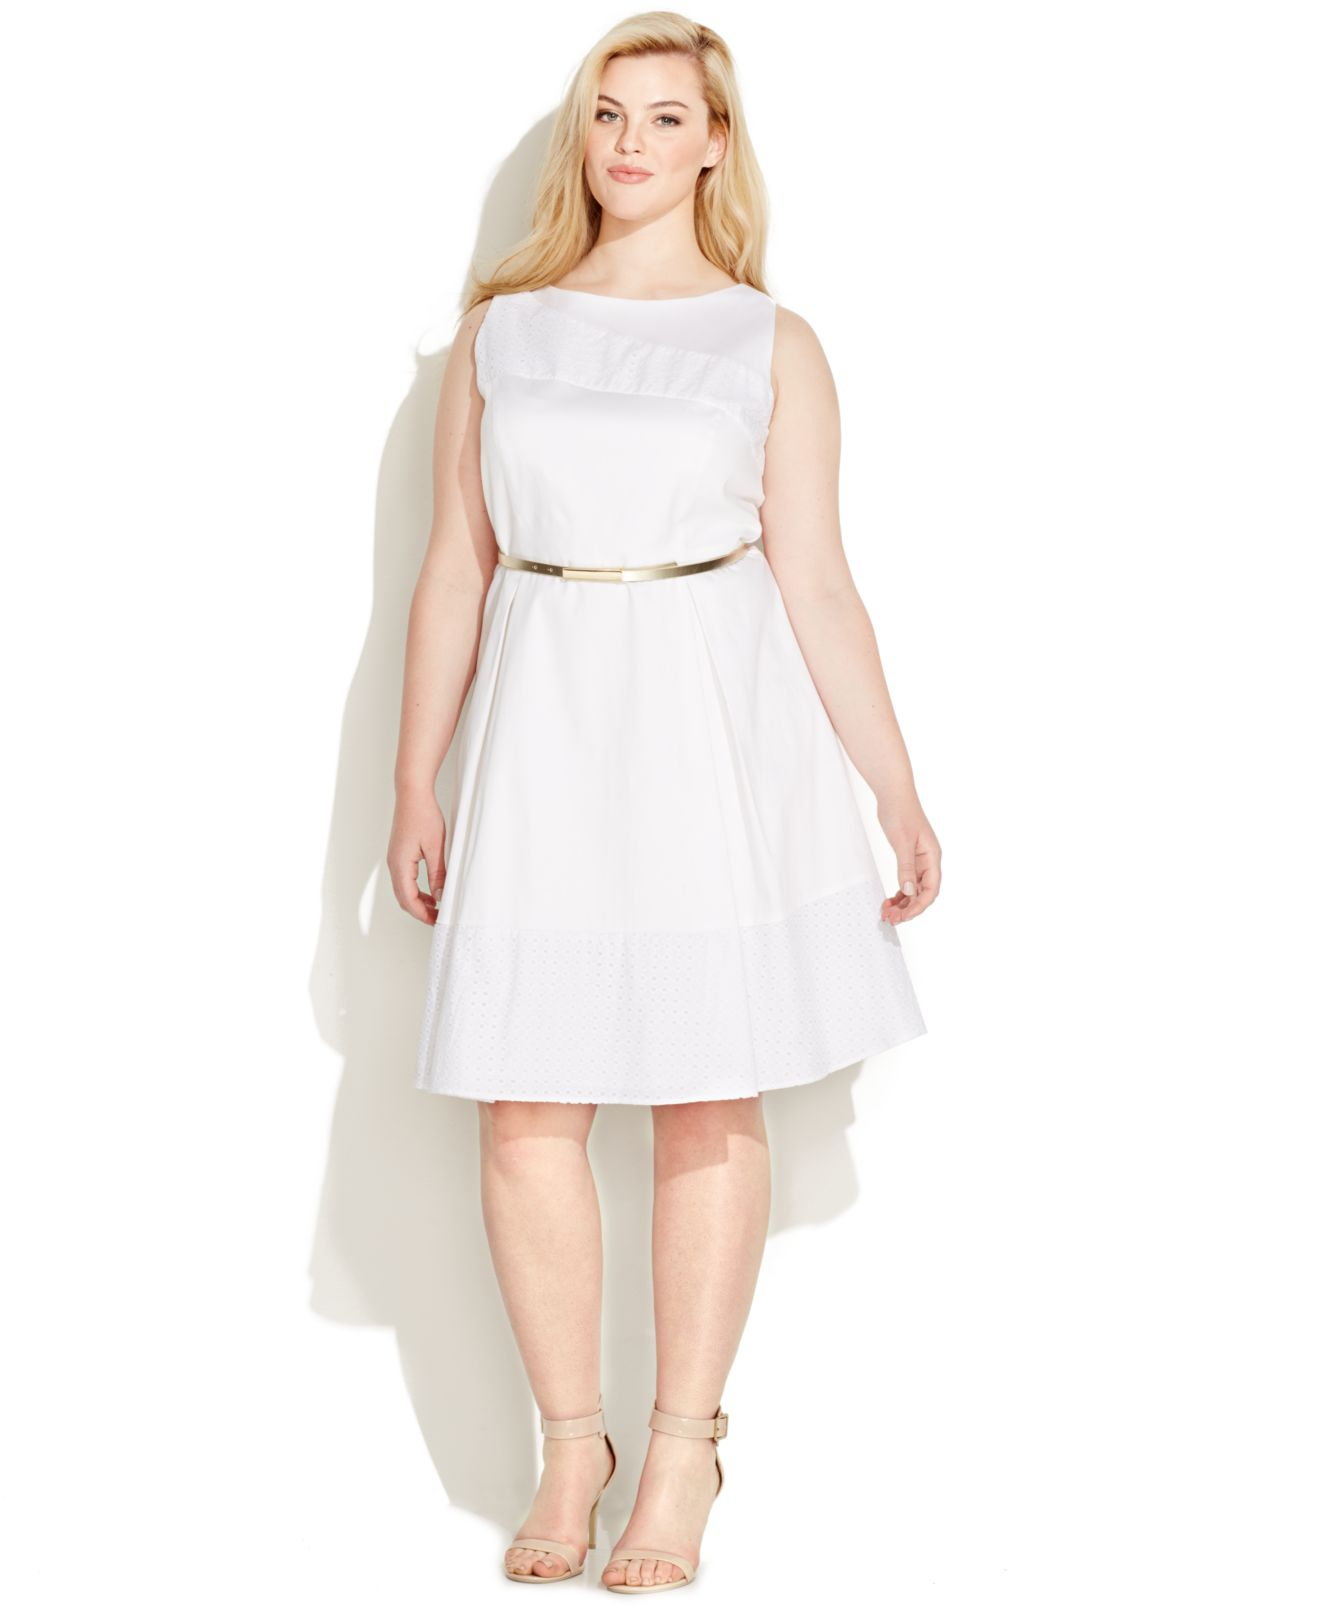 Calvin klein Plus Size Eyelet Belted A-line Dress in White - Lyst